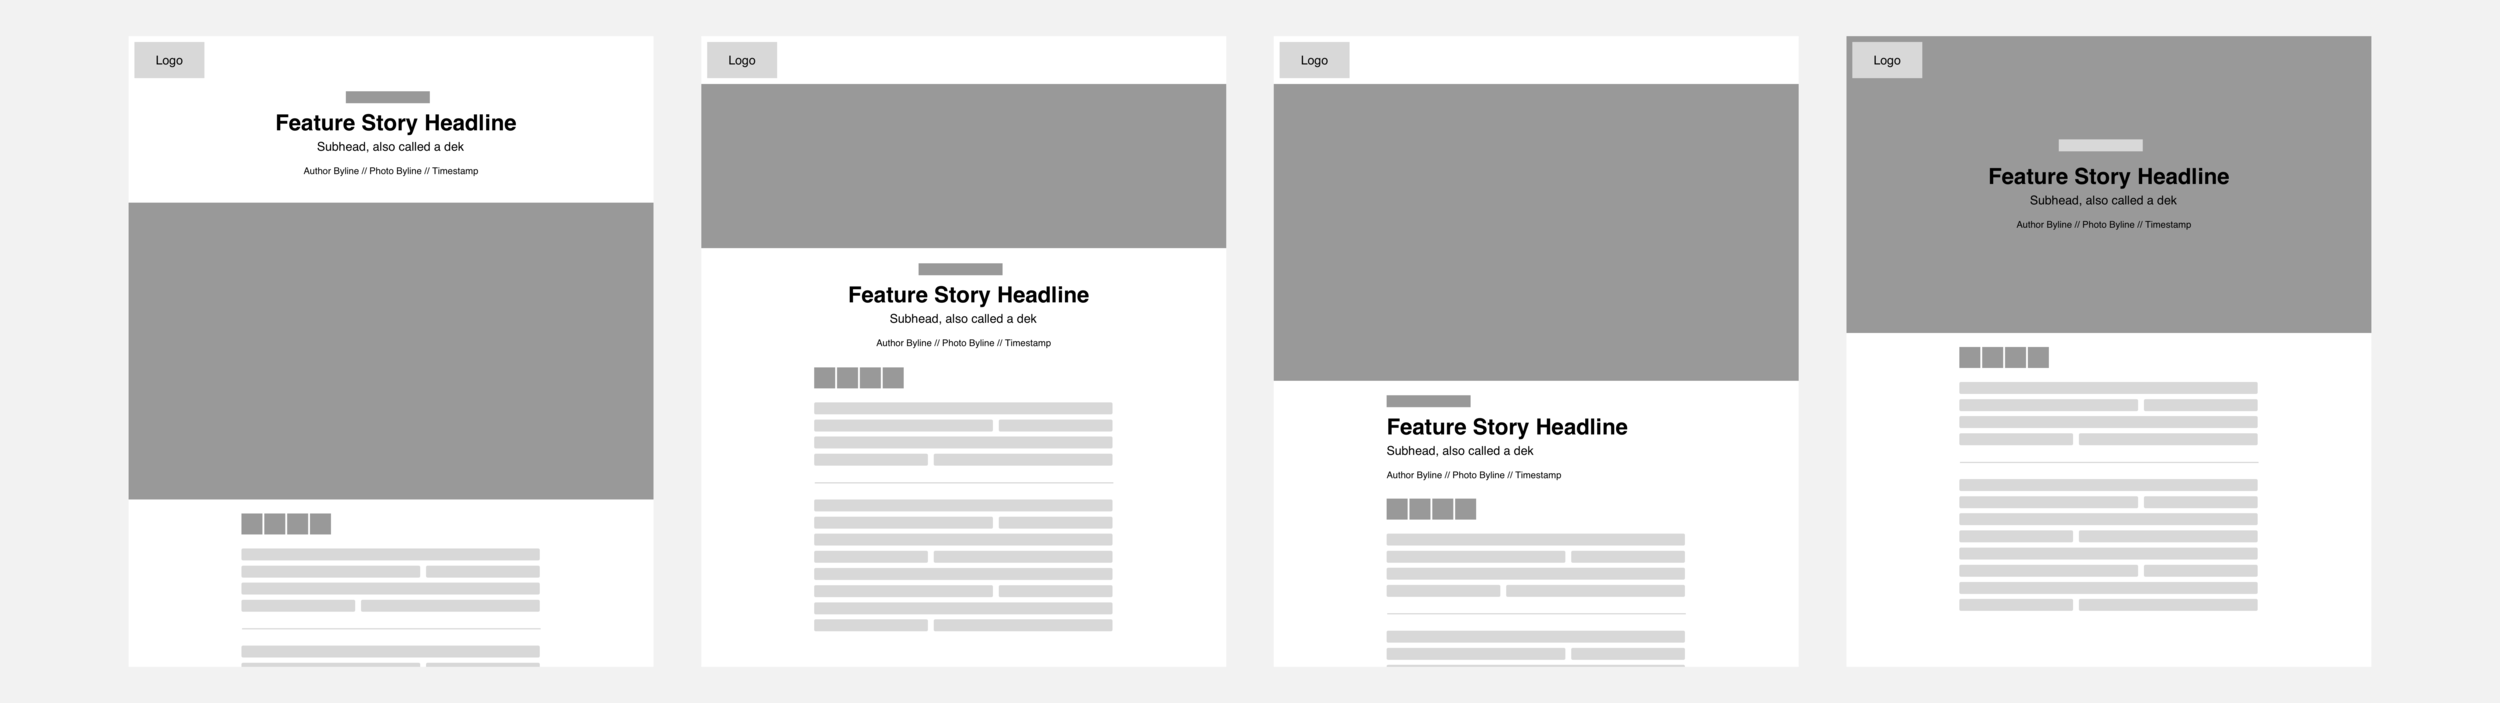 Four configurable layout options from left to right: headline above the main image, headline below a cropped image, headline below the main image, and headline overlaid on the image